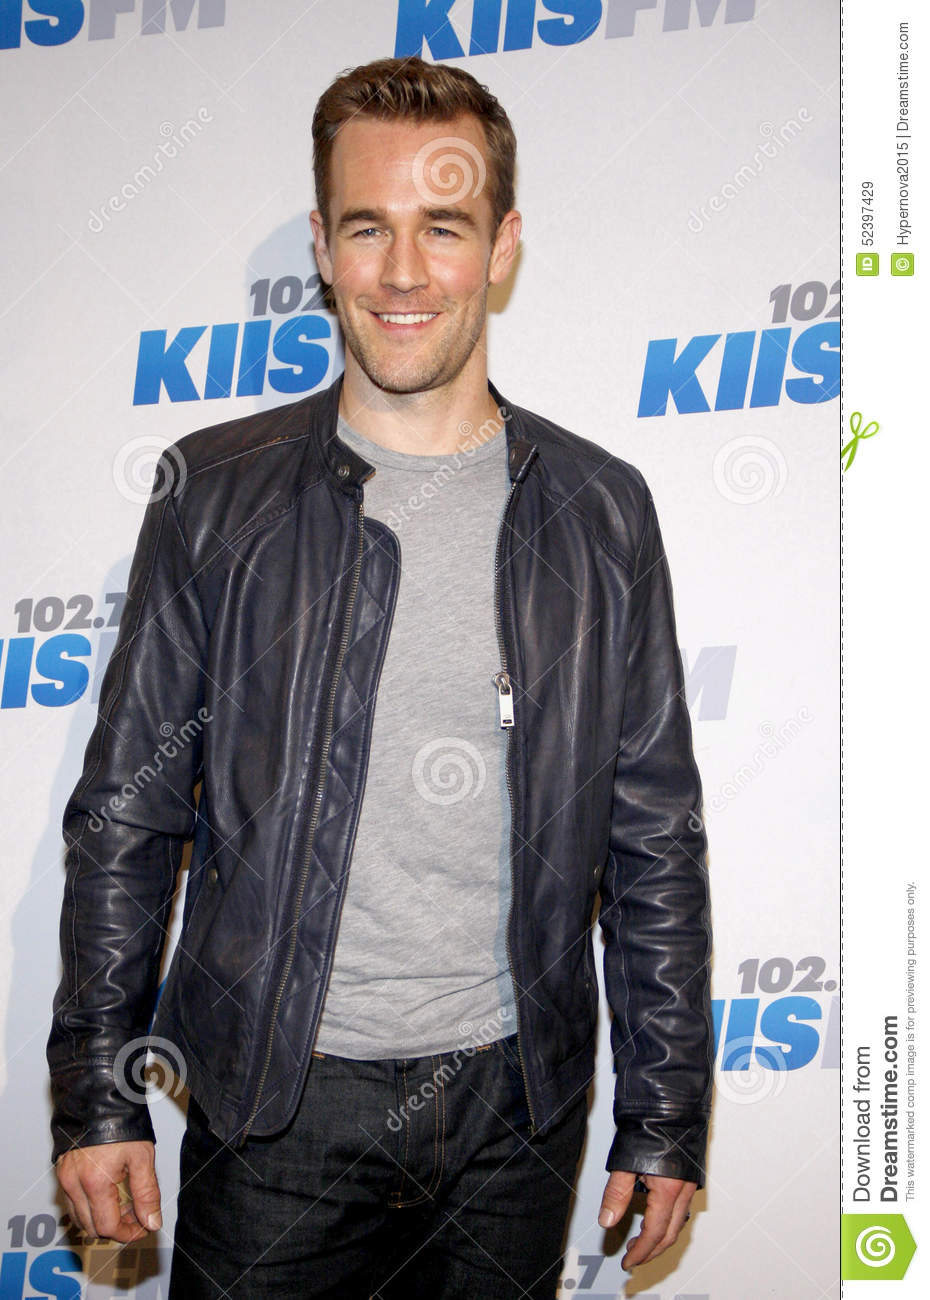 фургон james der beek